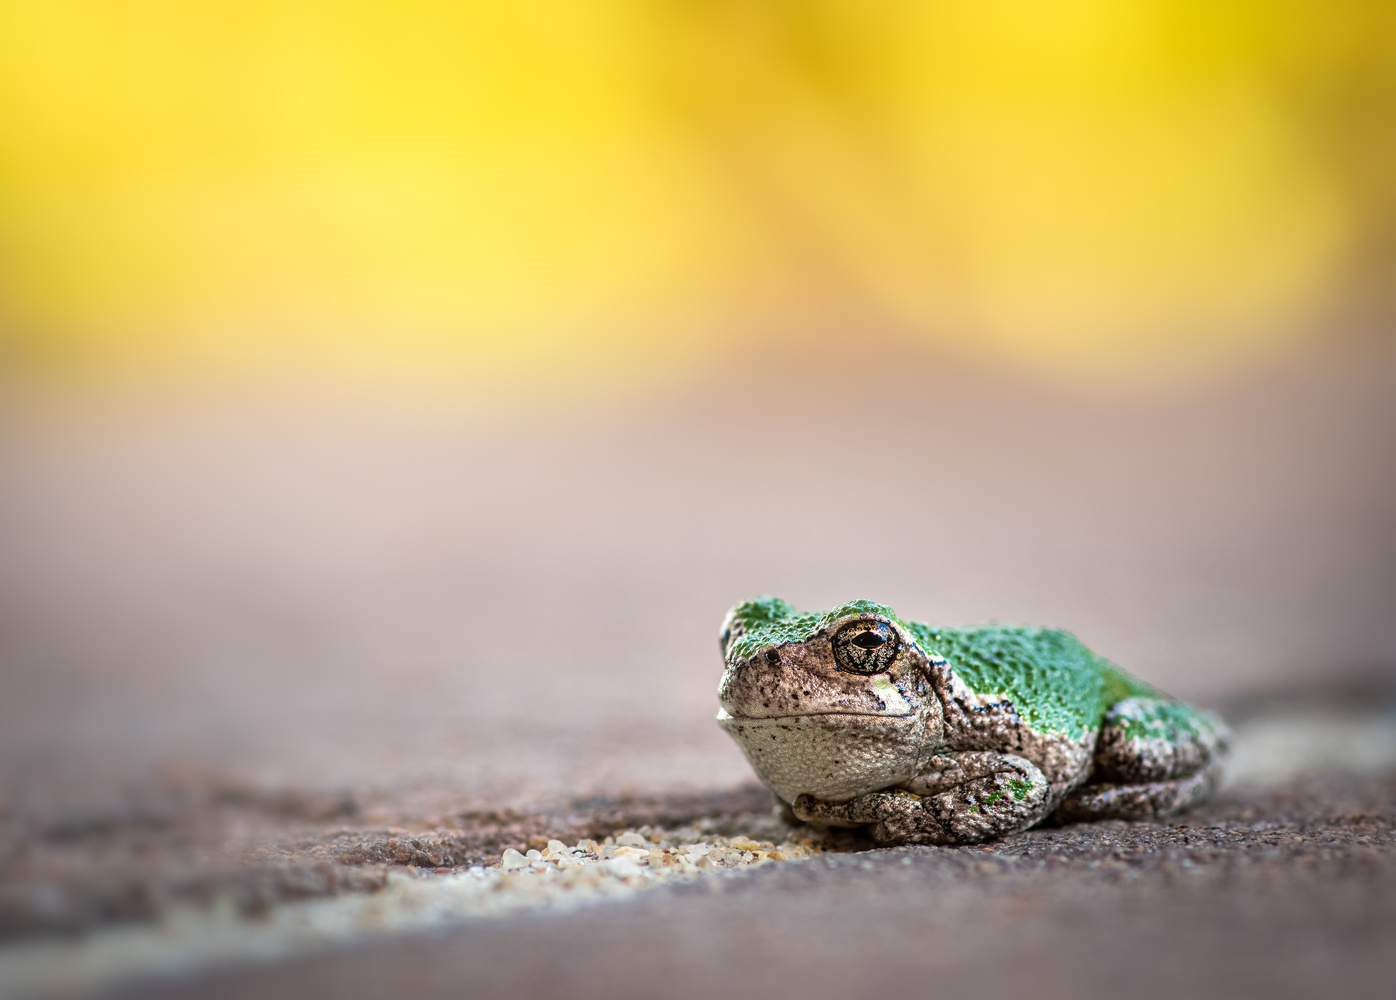 Why'd you wake me up? by Atul Saluja